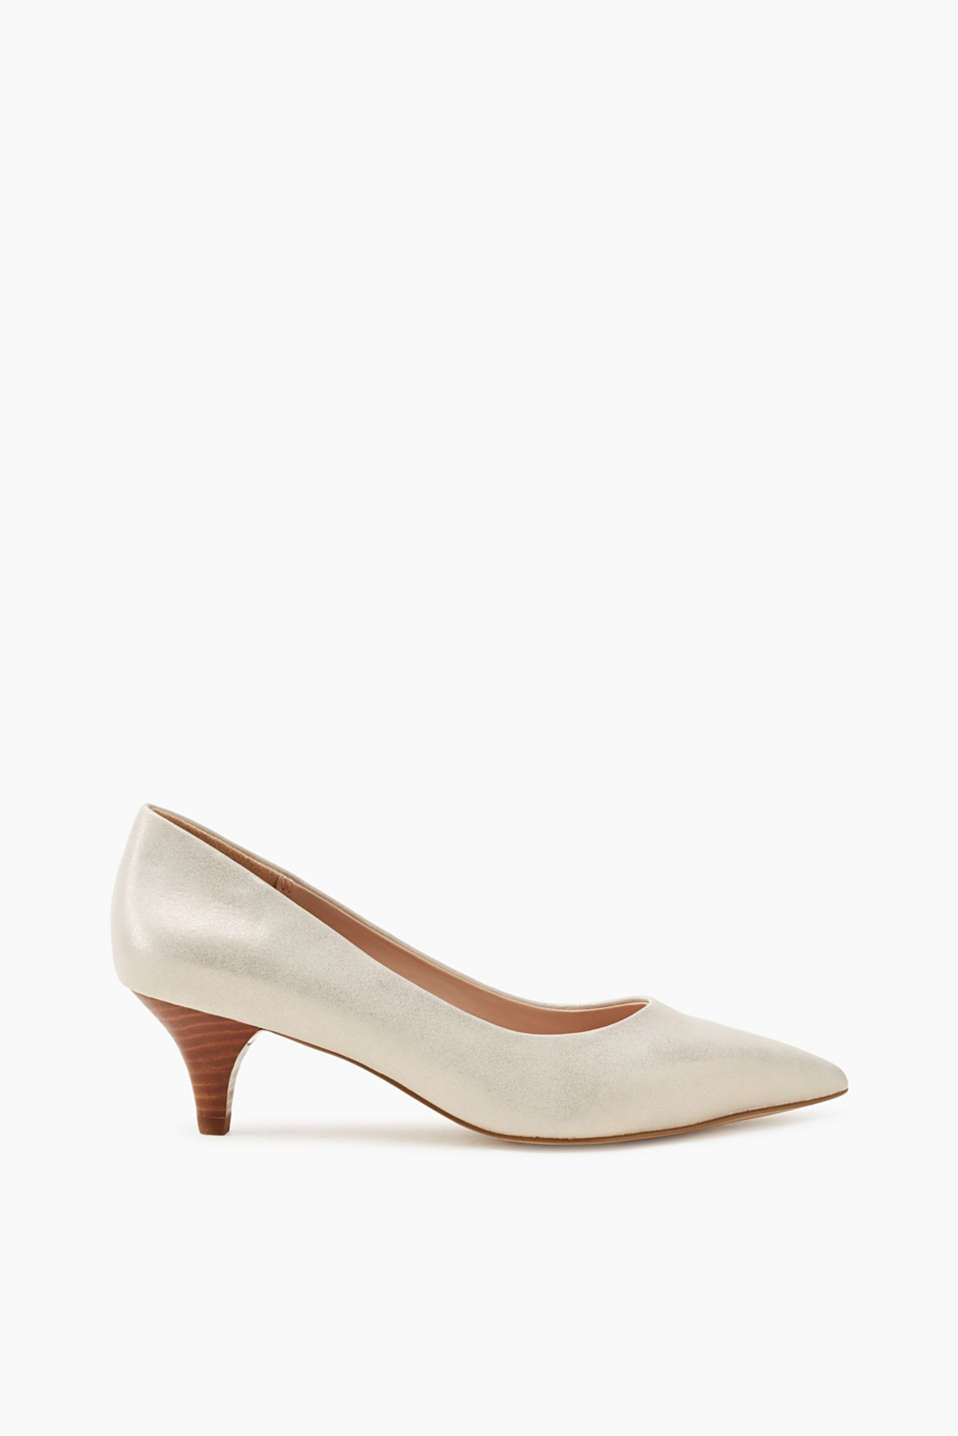 We love kitten heels! These court shoes boast a pointed toe and a wood-look heel.